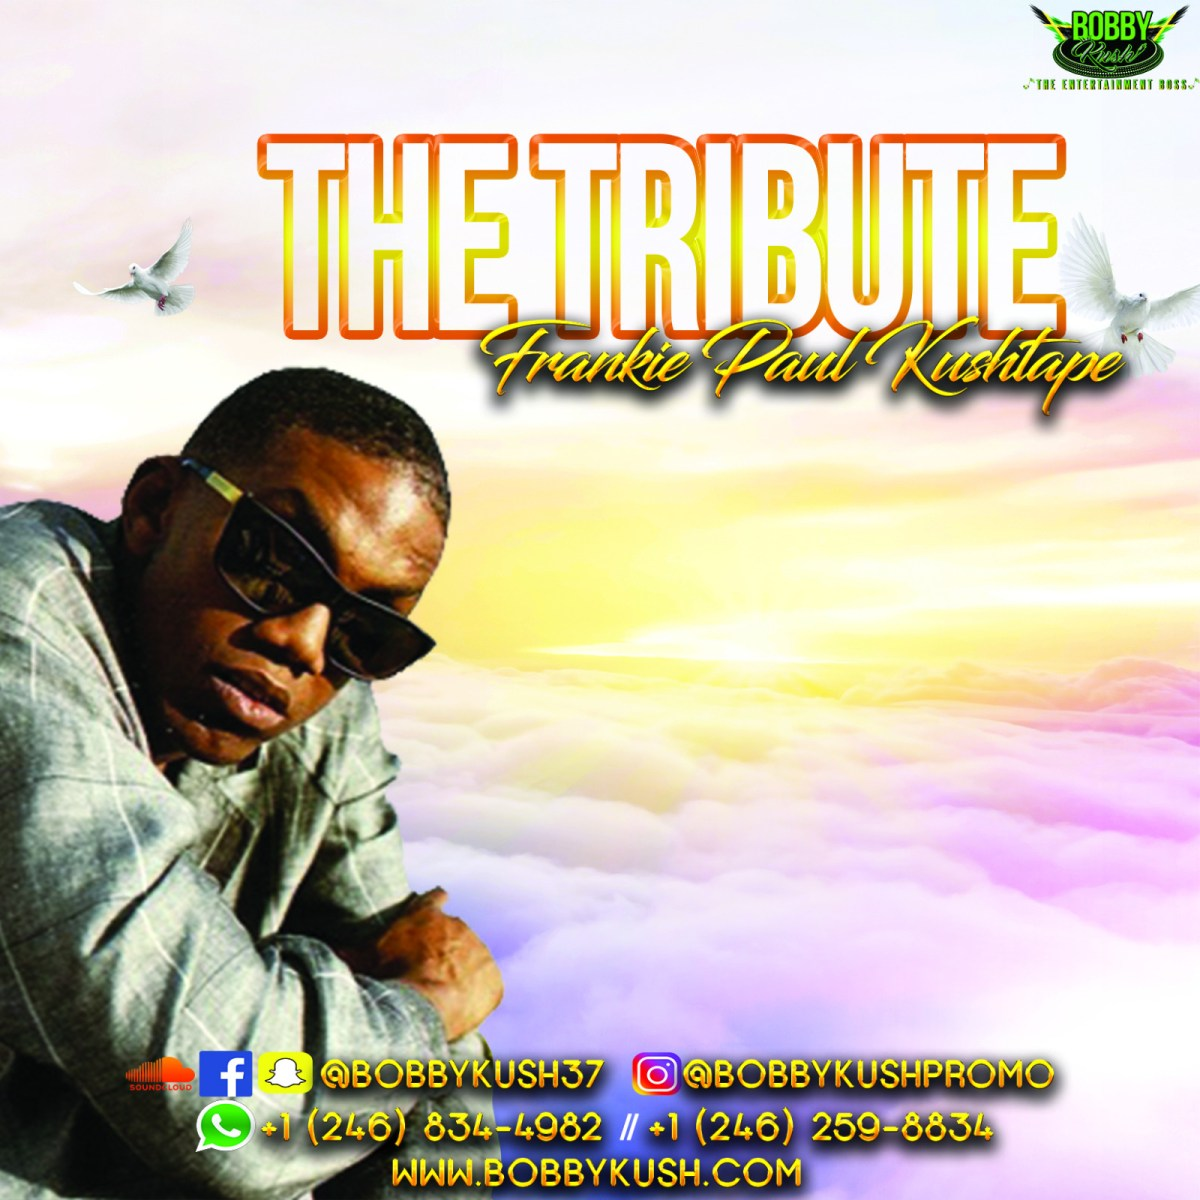 BOBBY KUSH PRESENTS THE TRIBUTE TO FRANKIE PAUL KUSHTAPE